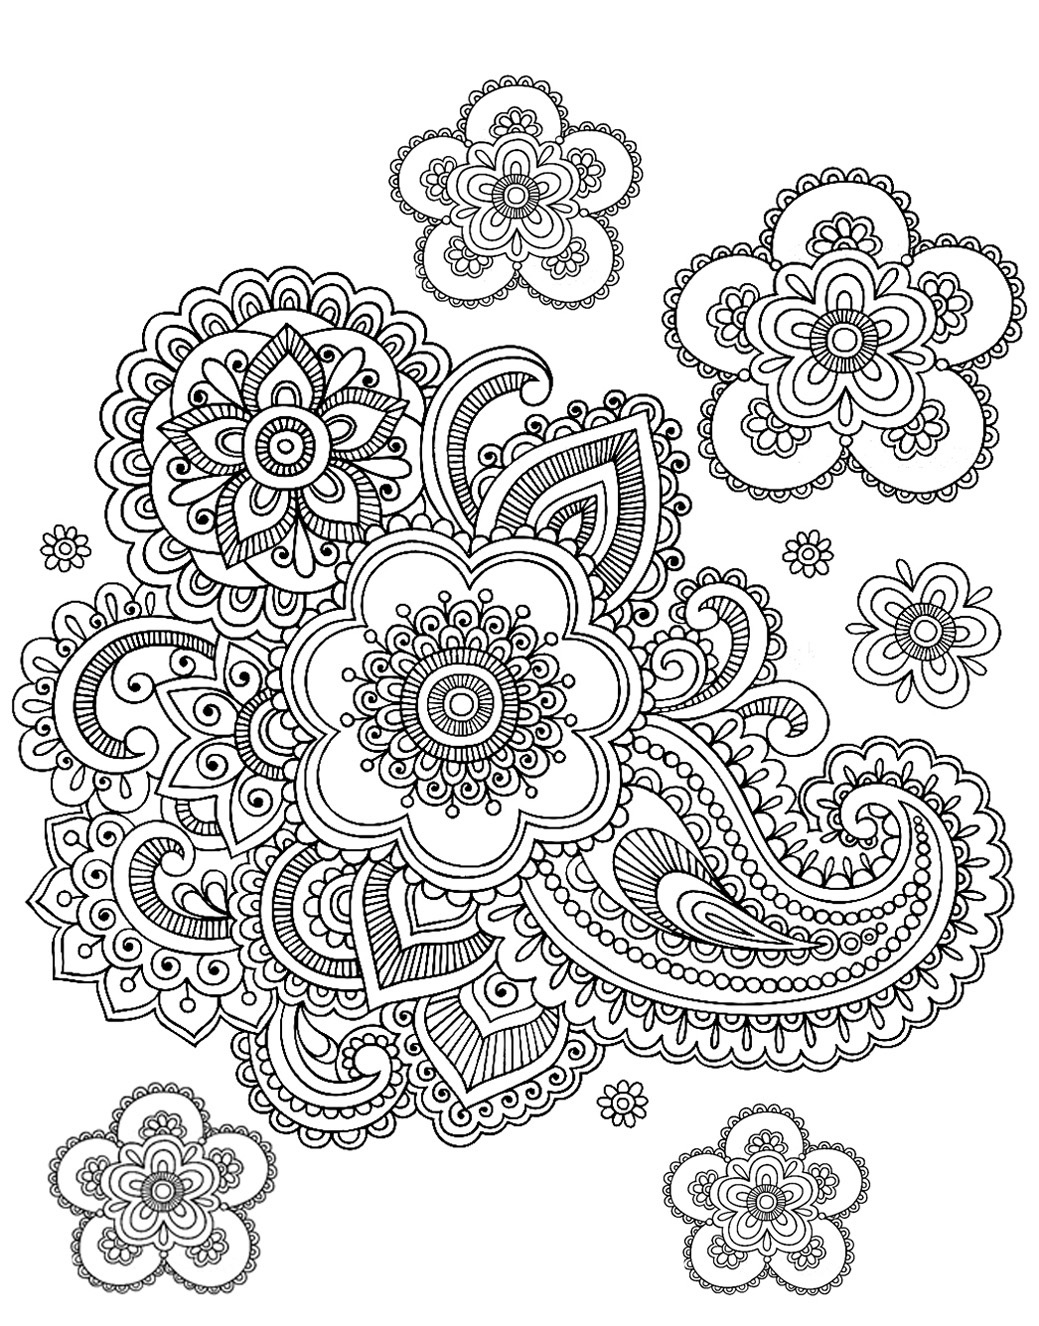 Coloring adult paisley difficult